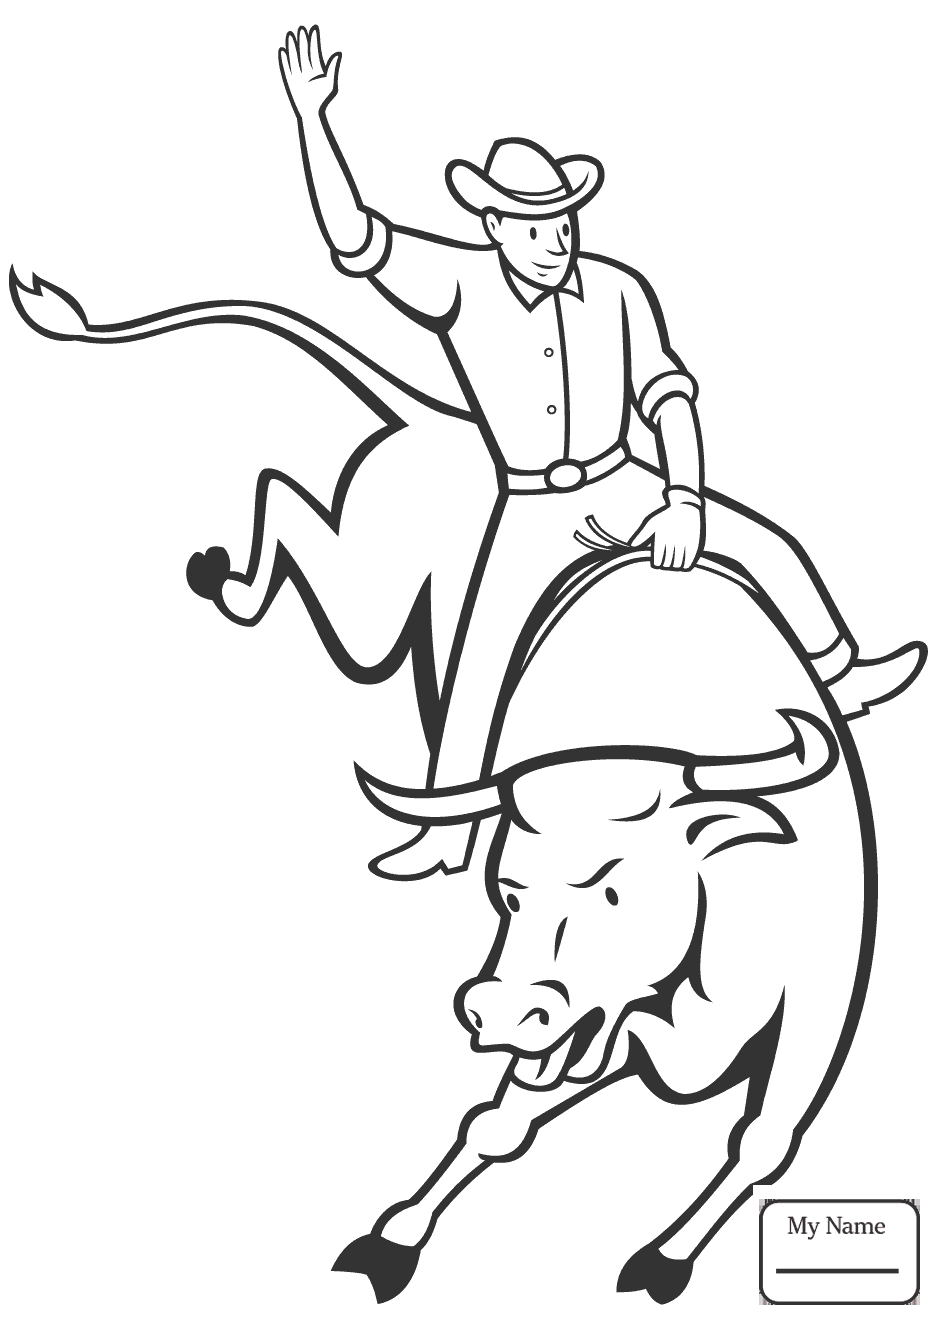 937x1326 Rodeo Bull Rider Activities Coloring Pages For Kids